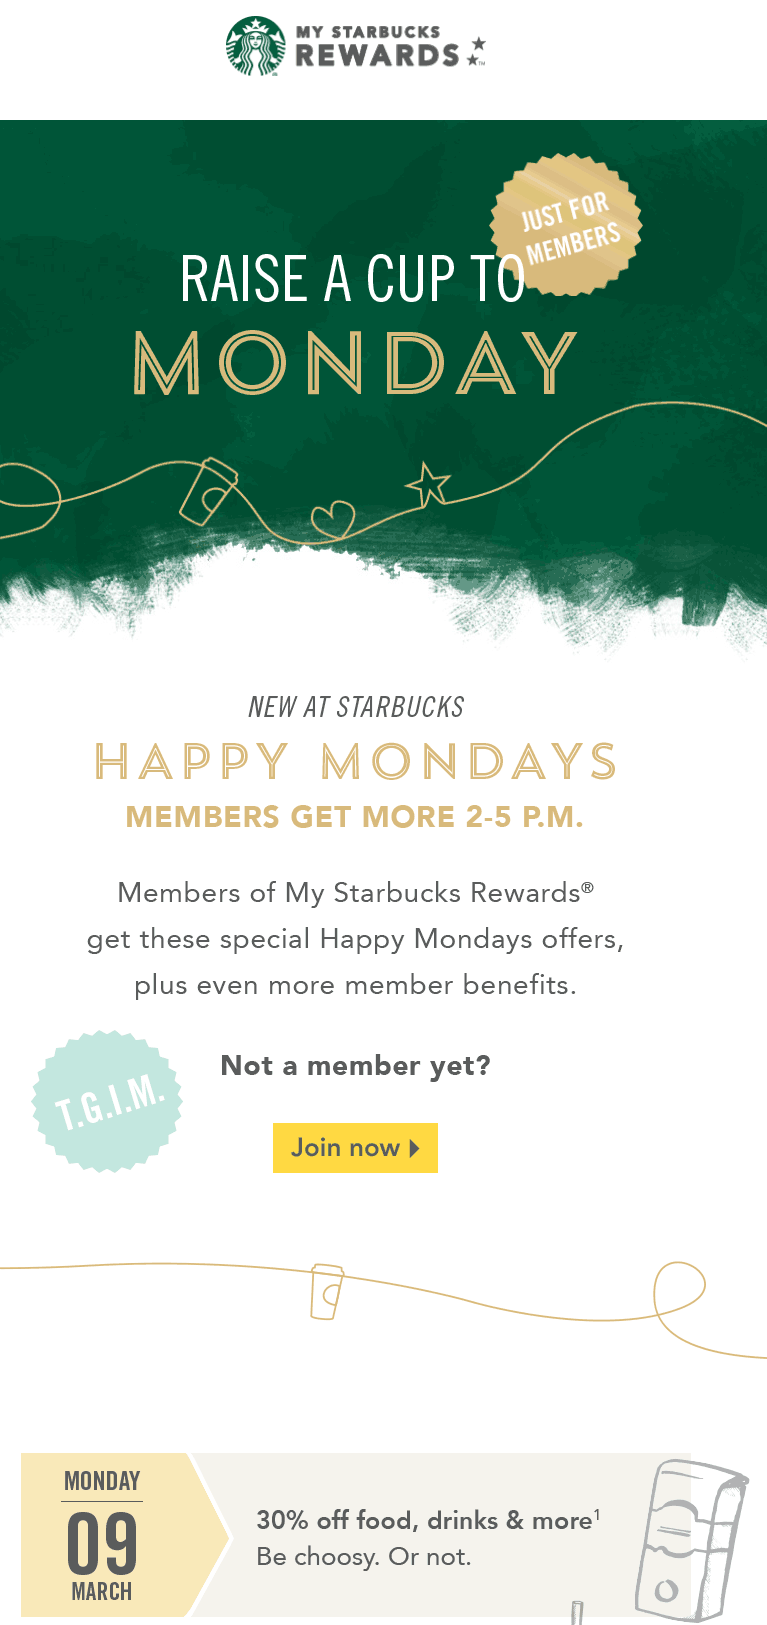 Starbucks Coupon March 2017 30% off 2-5pm Monday via free rewards card at Starbucks